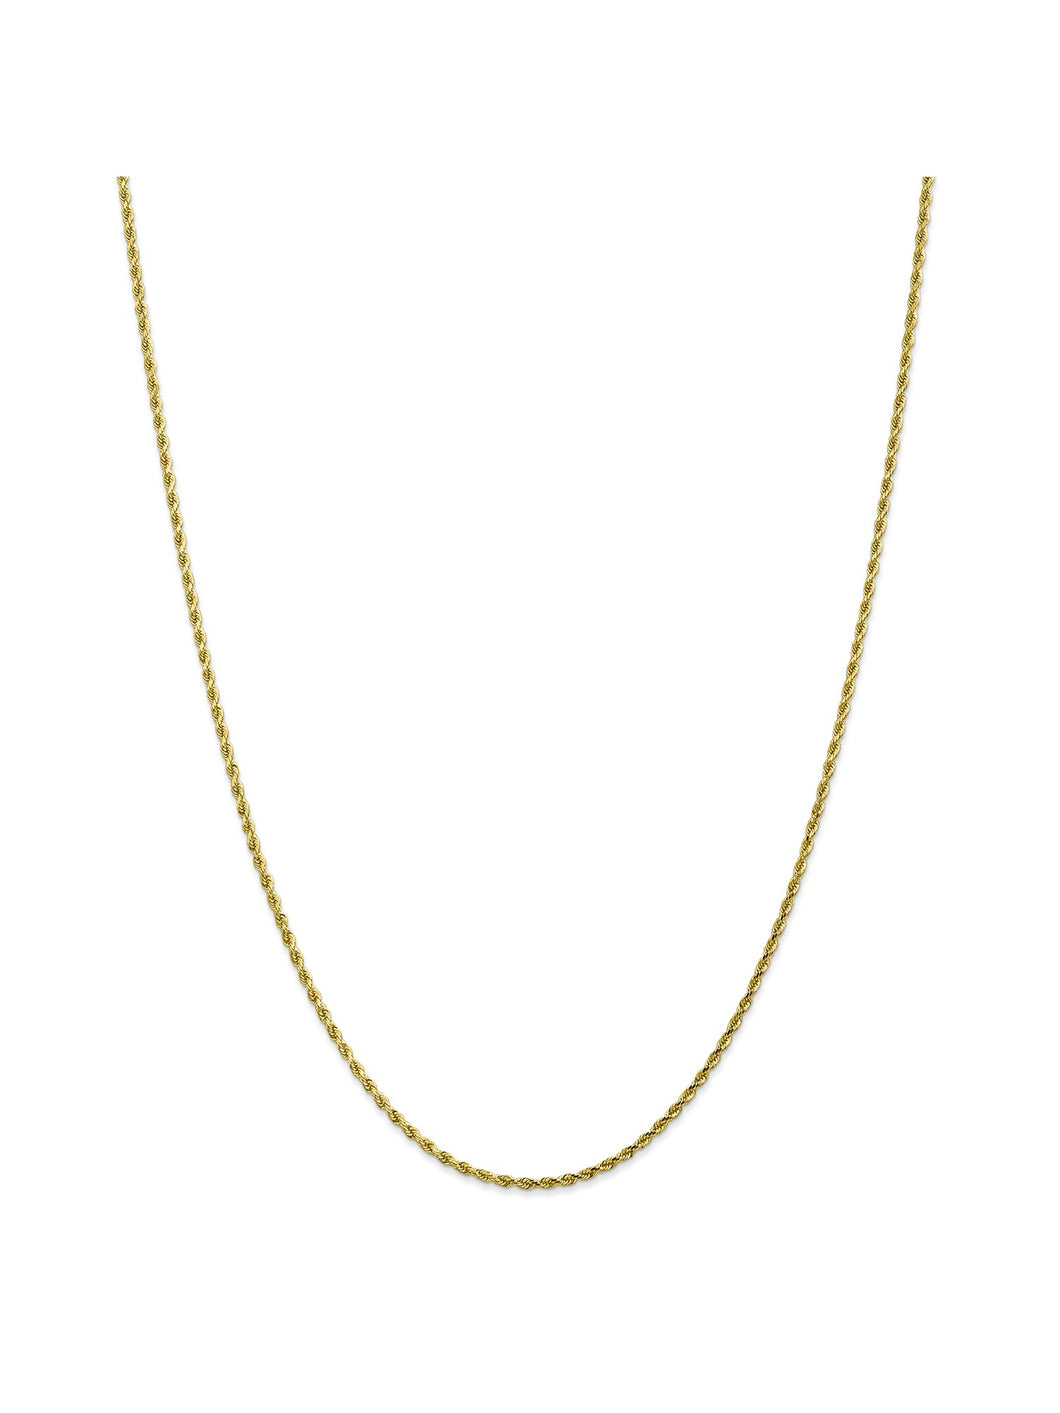 10k Yellow Gold 2mm Handmade Rope Chain Necklace